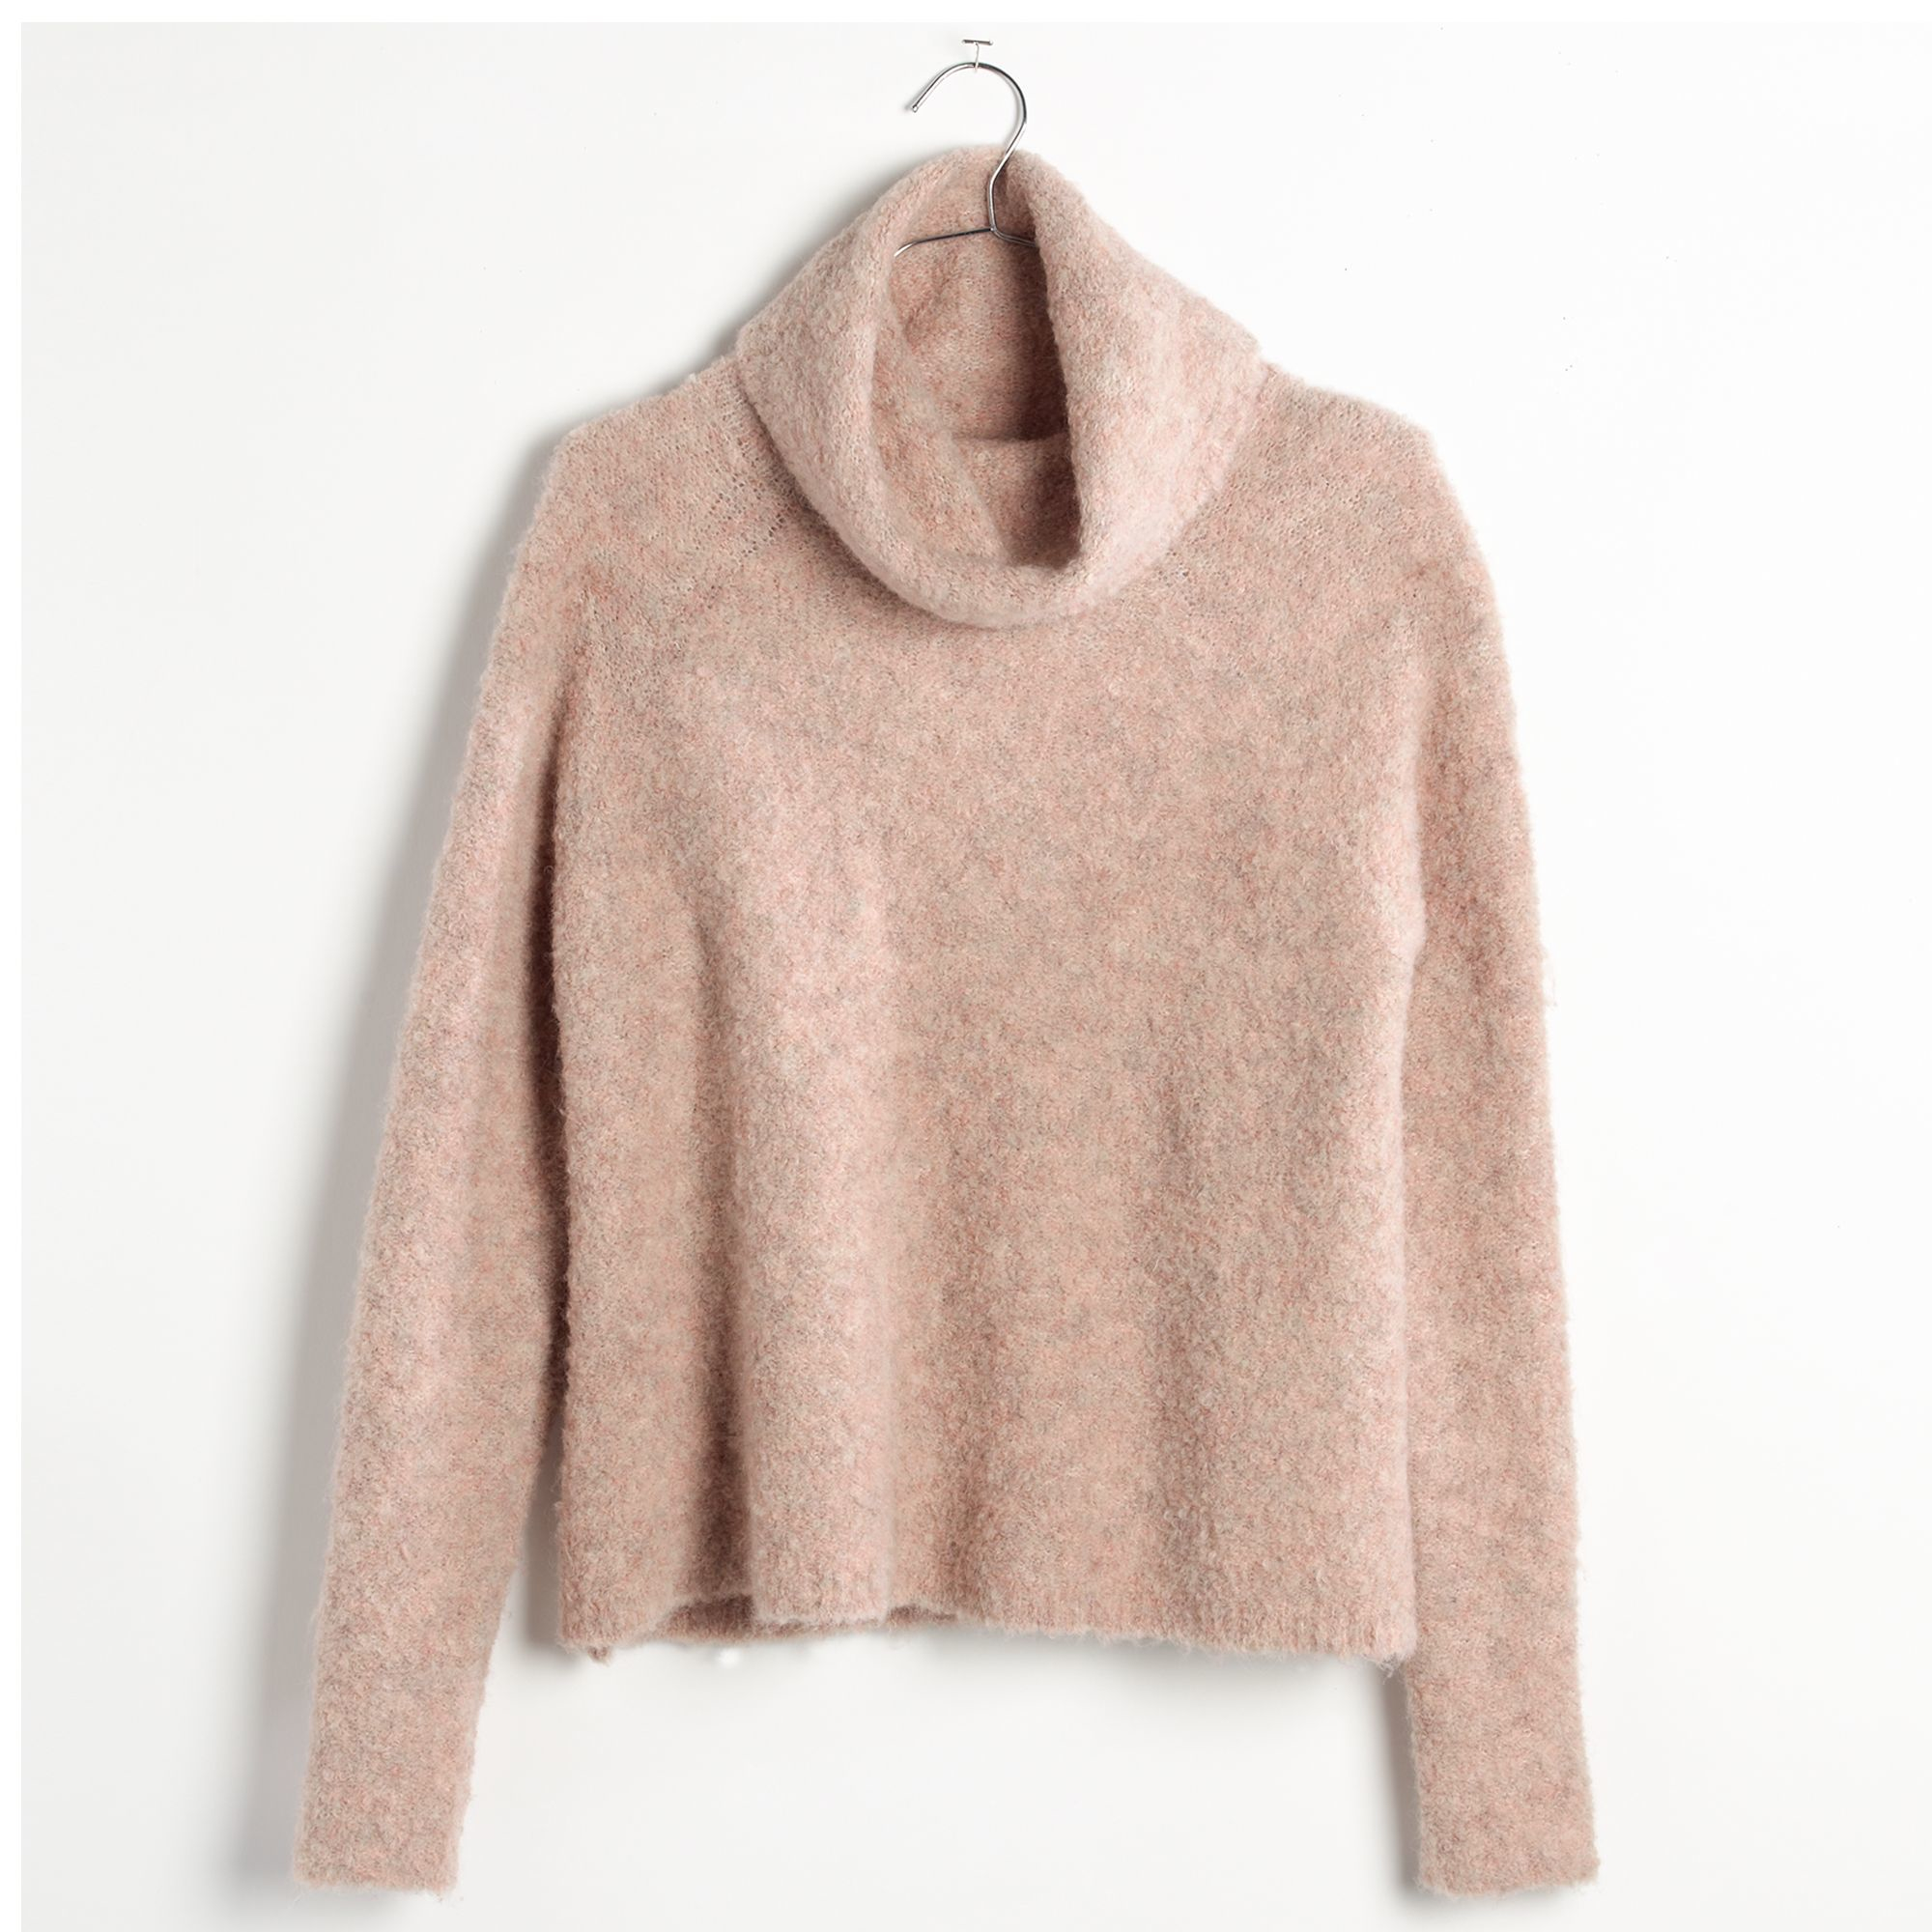 9a4c1d4f787 Lyst - Madewell Roundtrip Turtleneck Sweater in Pink